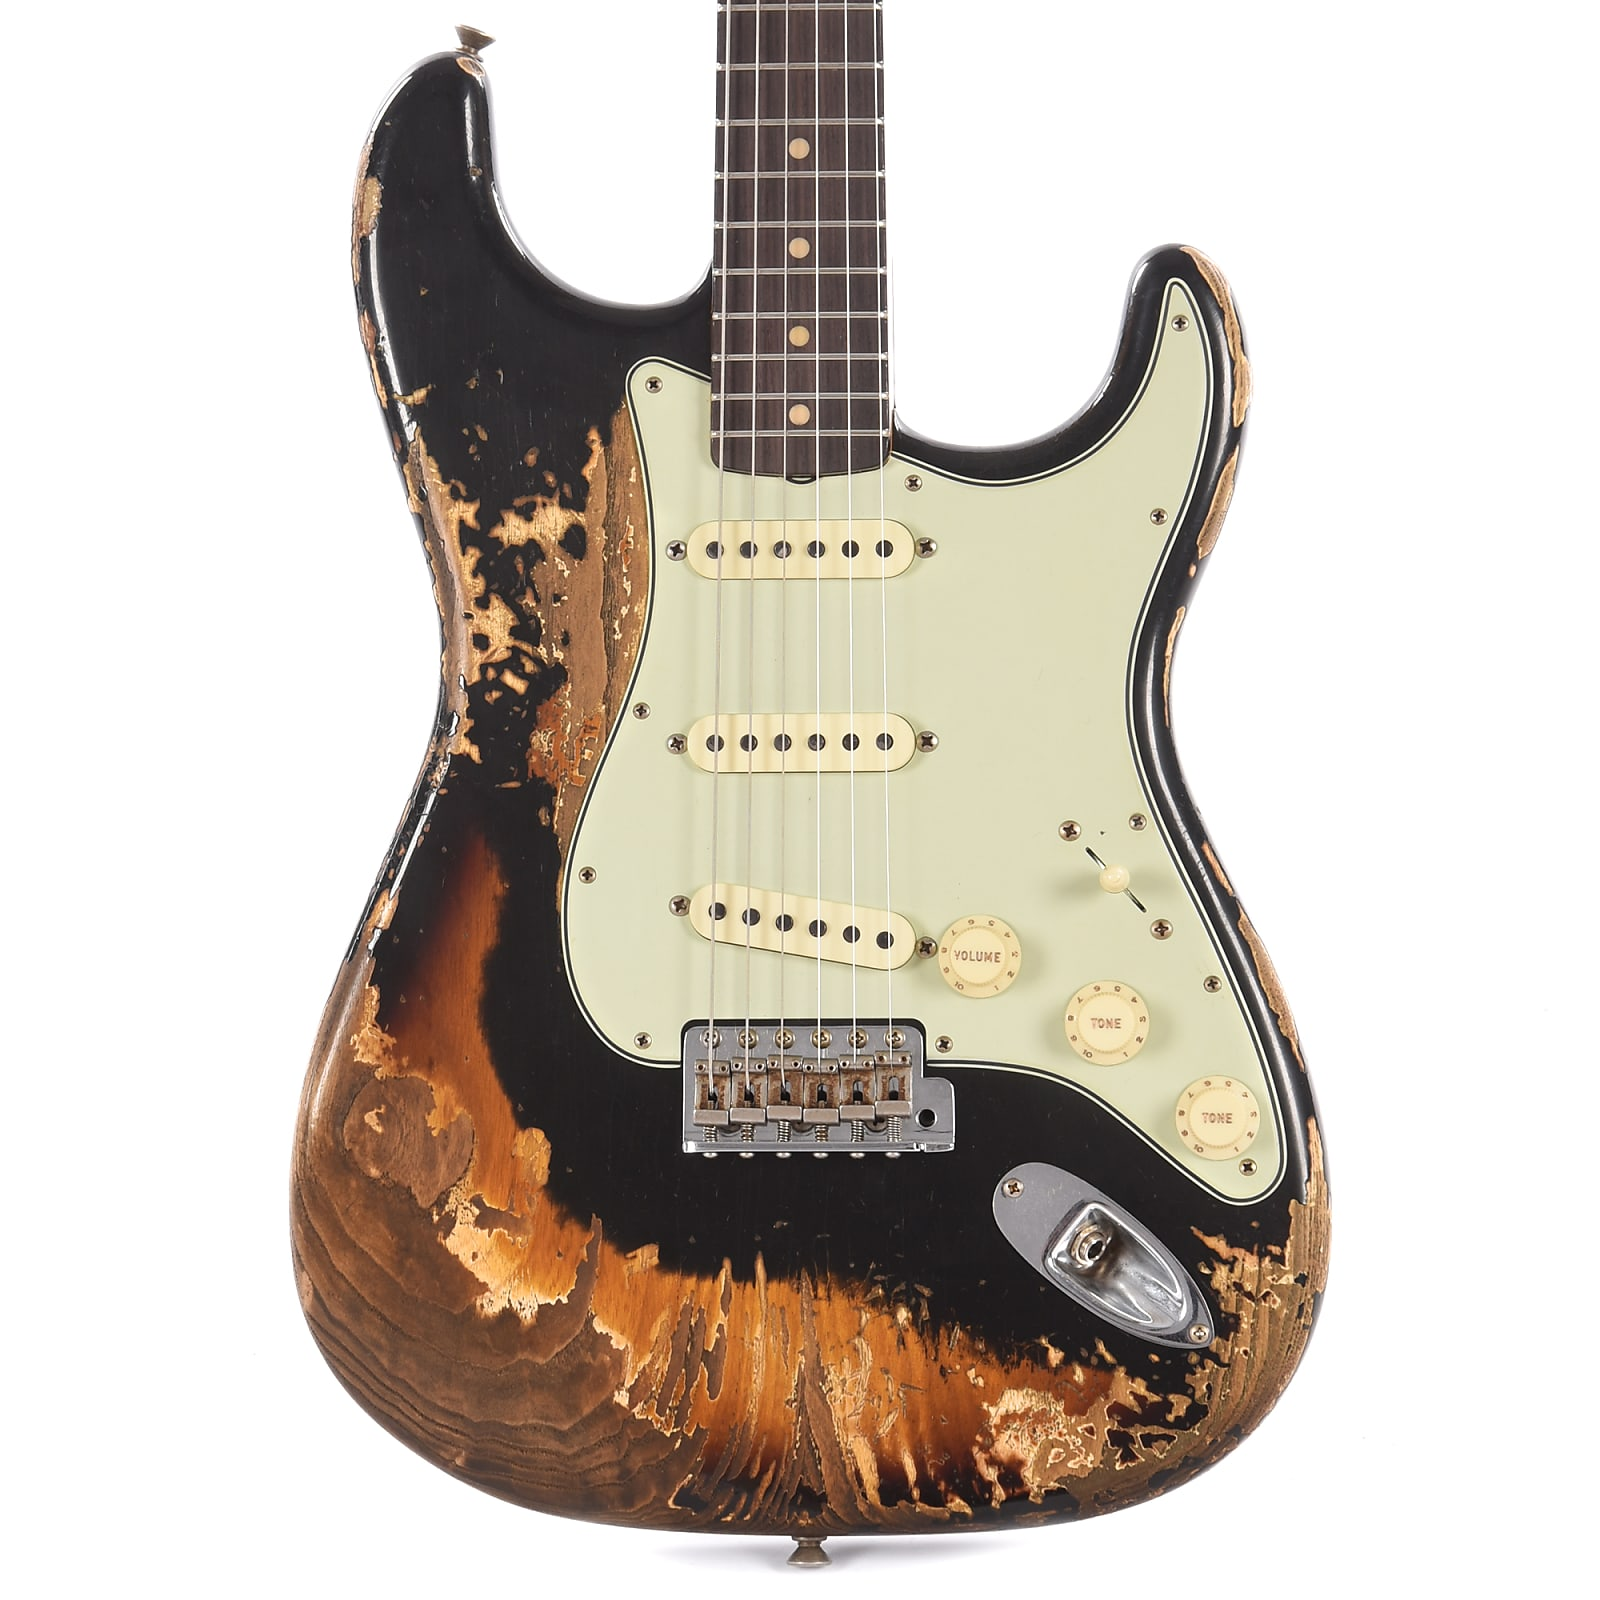 Fender Custom Shop Limited Edition 63 Stratocaster Super Heavy